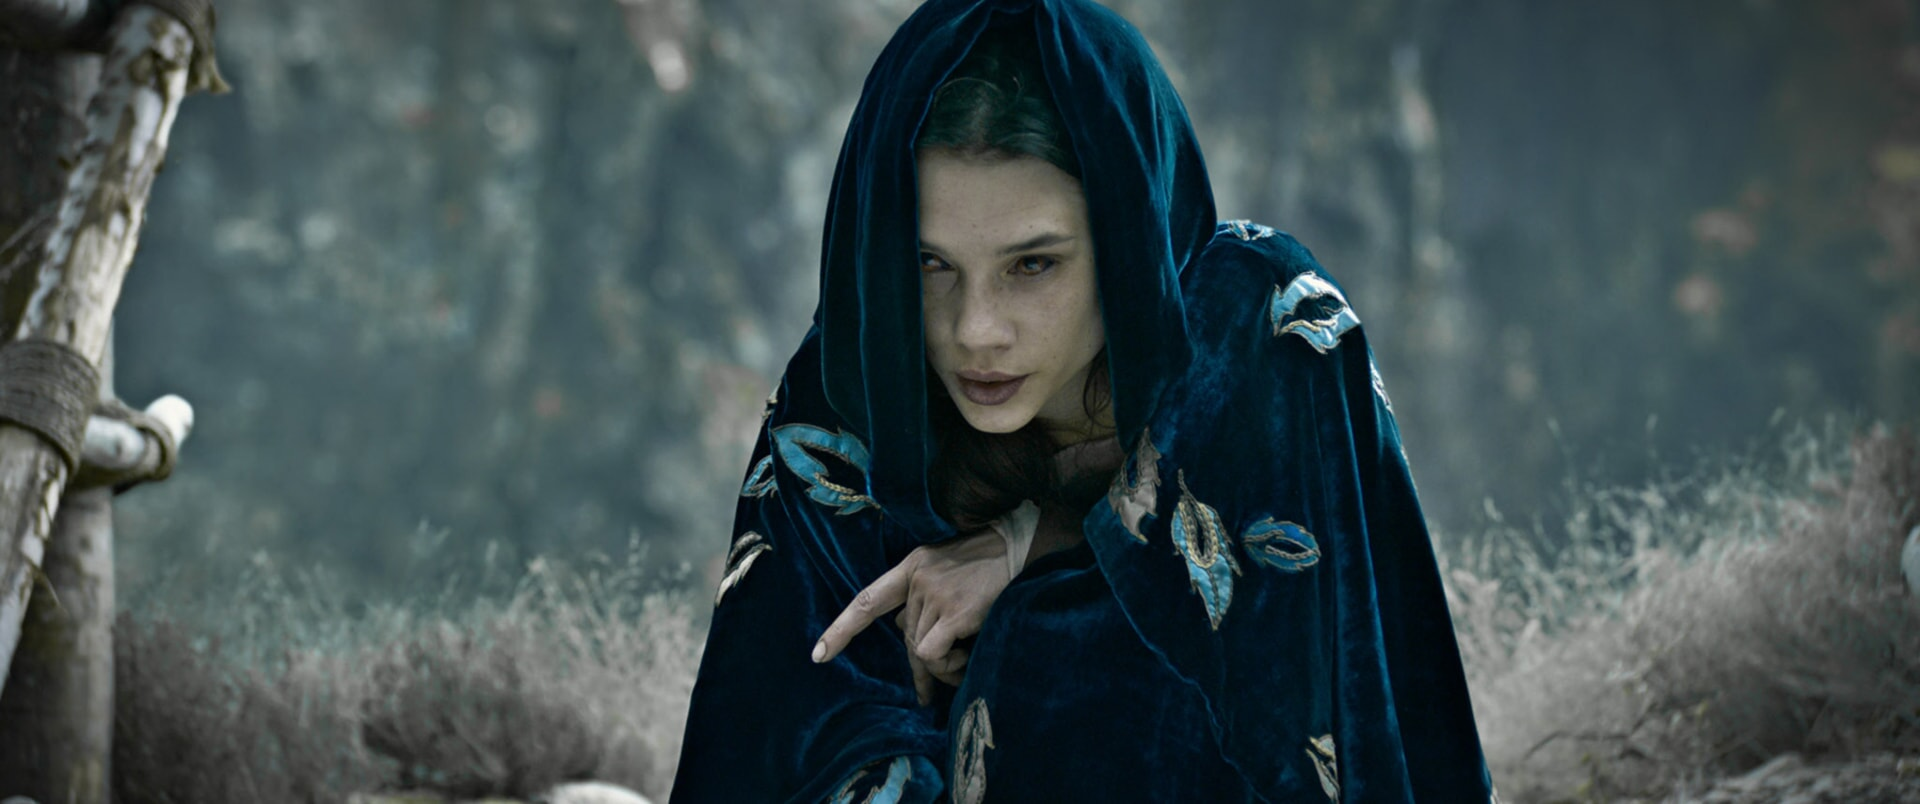 "ASTRID BERGÈS-FRISBEY as The Mage in Warner Bros. Pictures' and Village Roadshow Pictures' fantasy action adventure ""KING ARTHUR: LEGEND OF THE SWORD,"" distributed worldwide by Warner Bros. Pictures and in select territories by Village Roadshow Pictures."